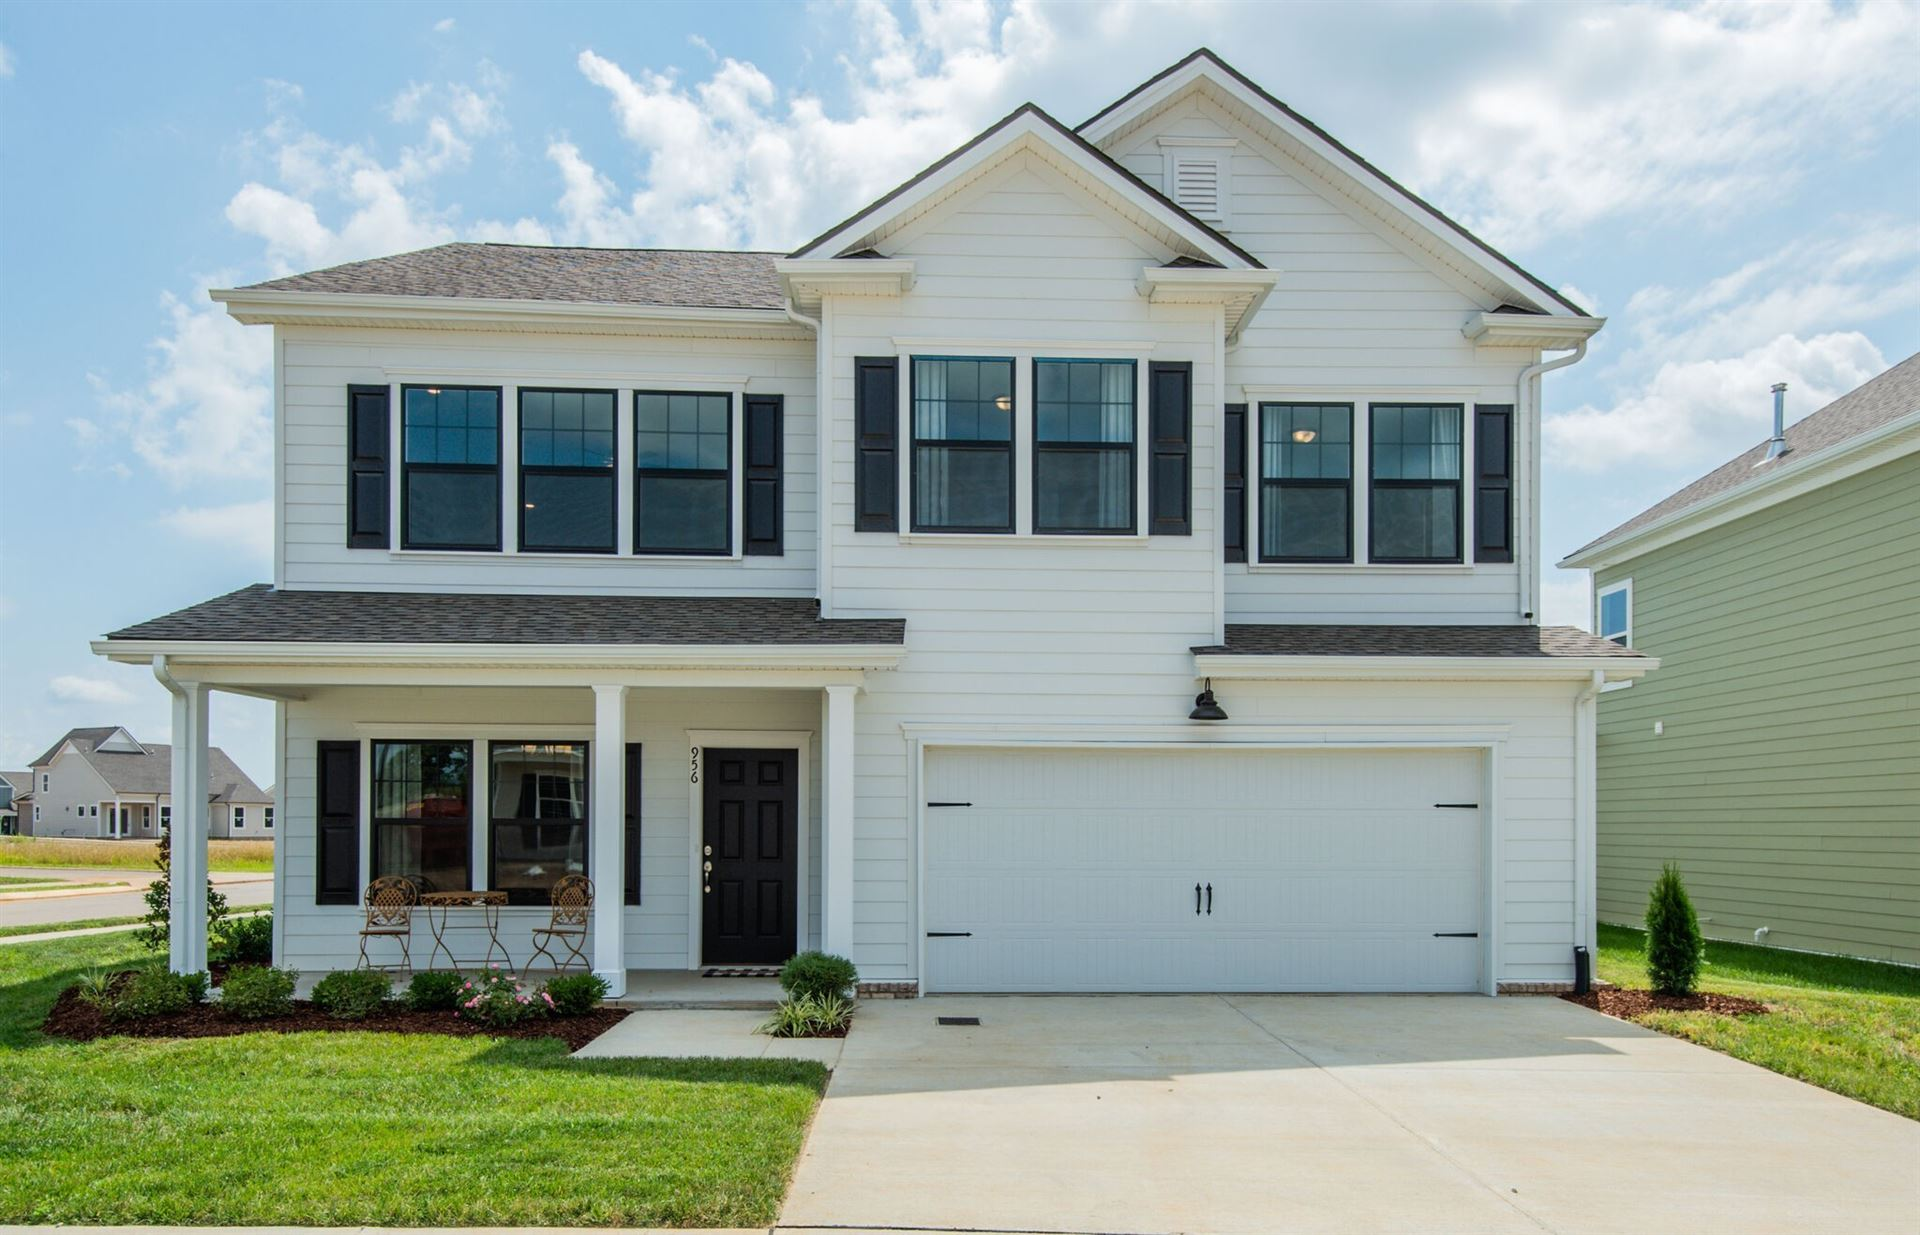 929 Carraway Ln, Spring Hill, TN 37174 - MLS#: 2207028